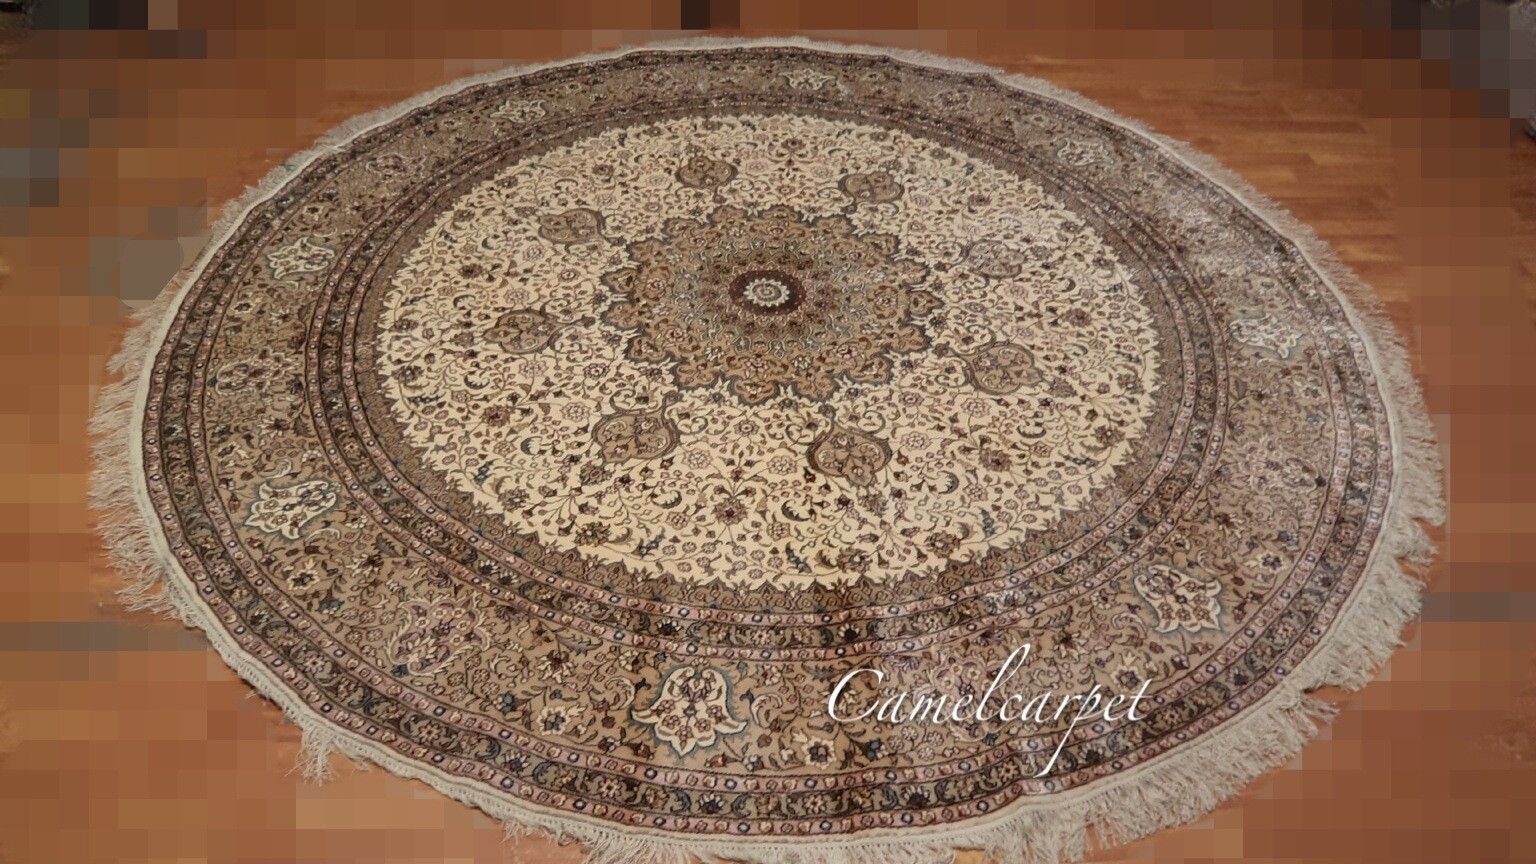 8x8 Foot Round Silk Carpet For Sale 100 Hand Kontted Central